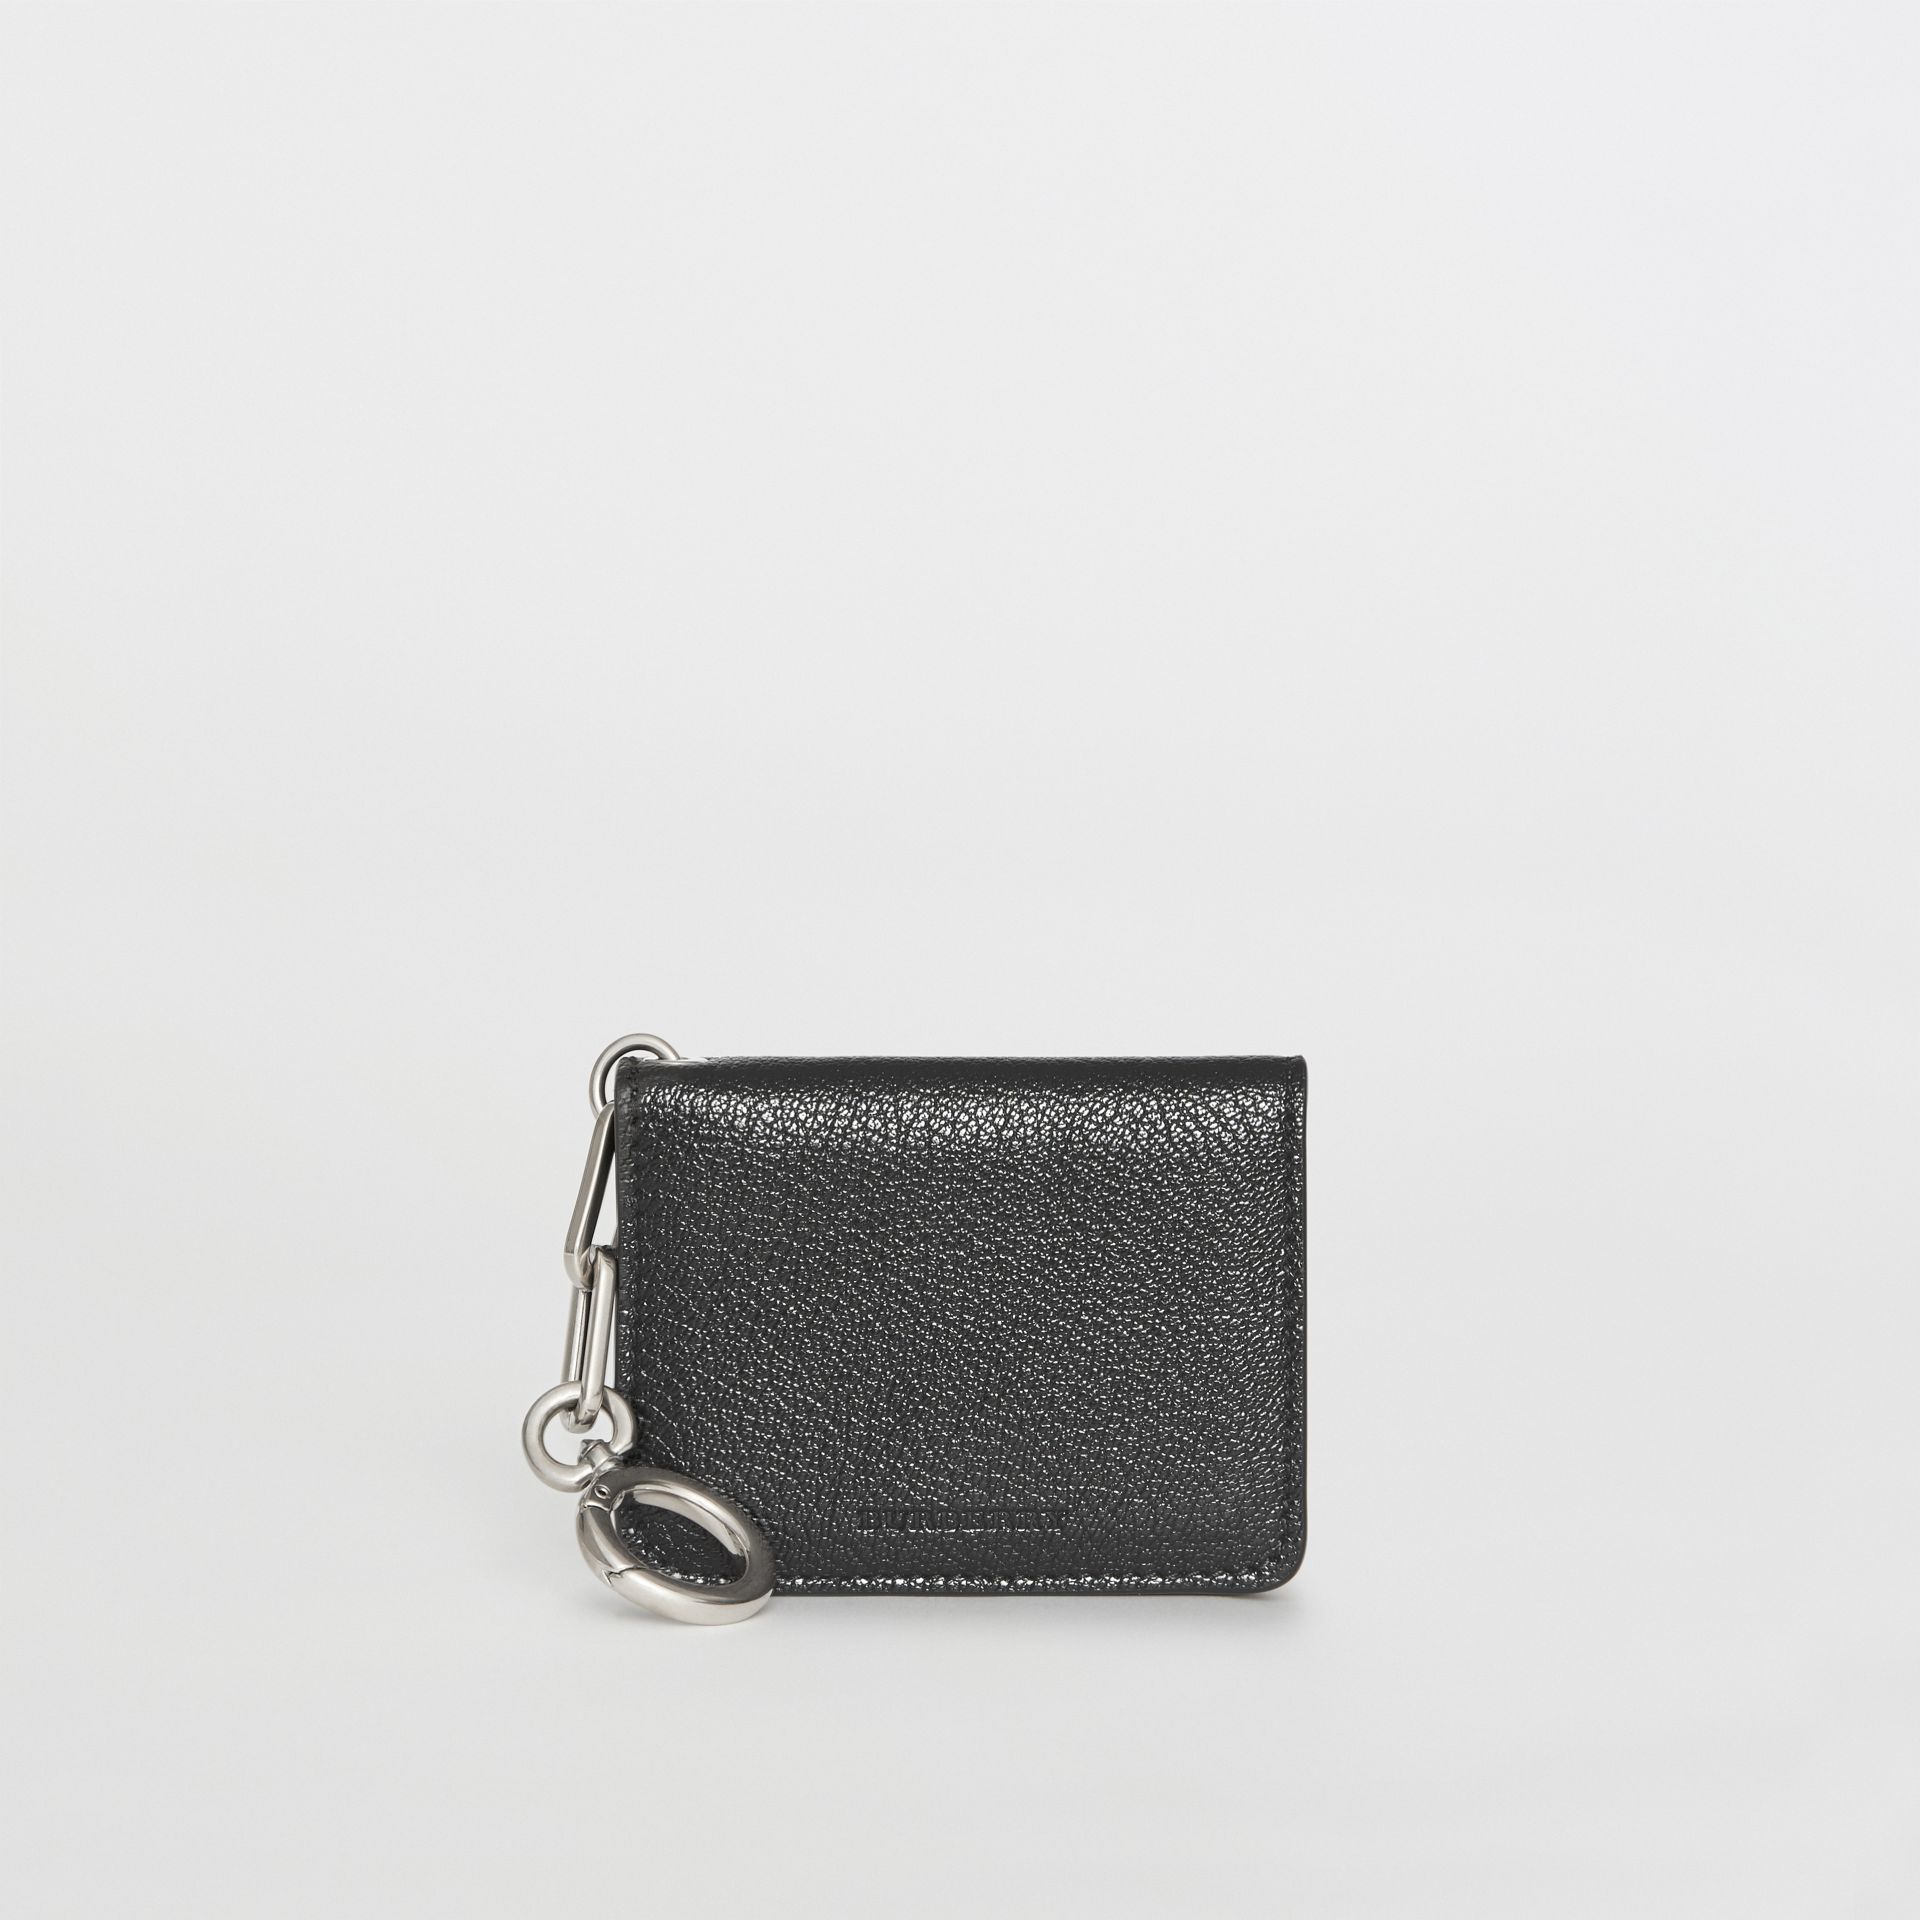 Link Detail Leather ID Card Case Charm in Black | Burberry - gallery image 3